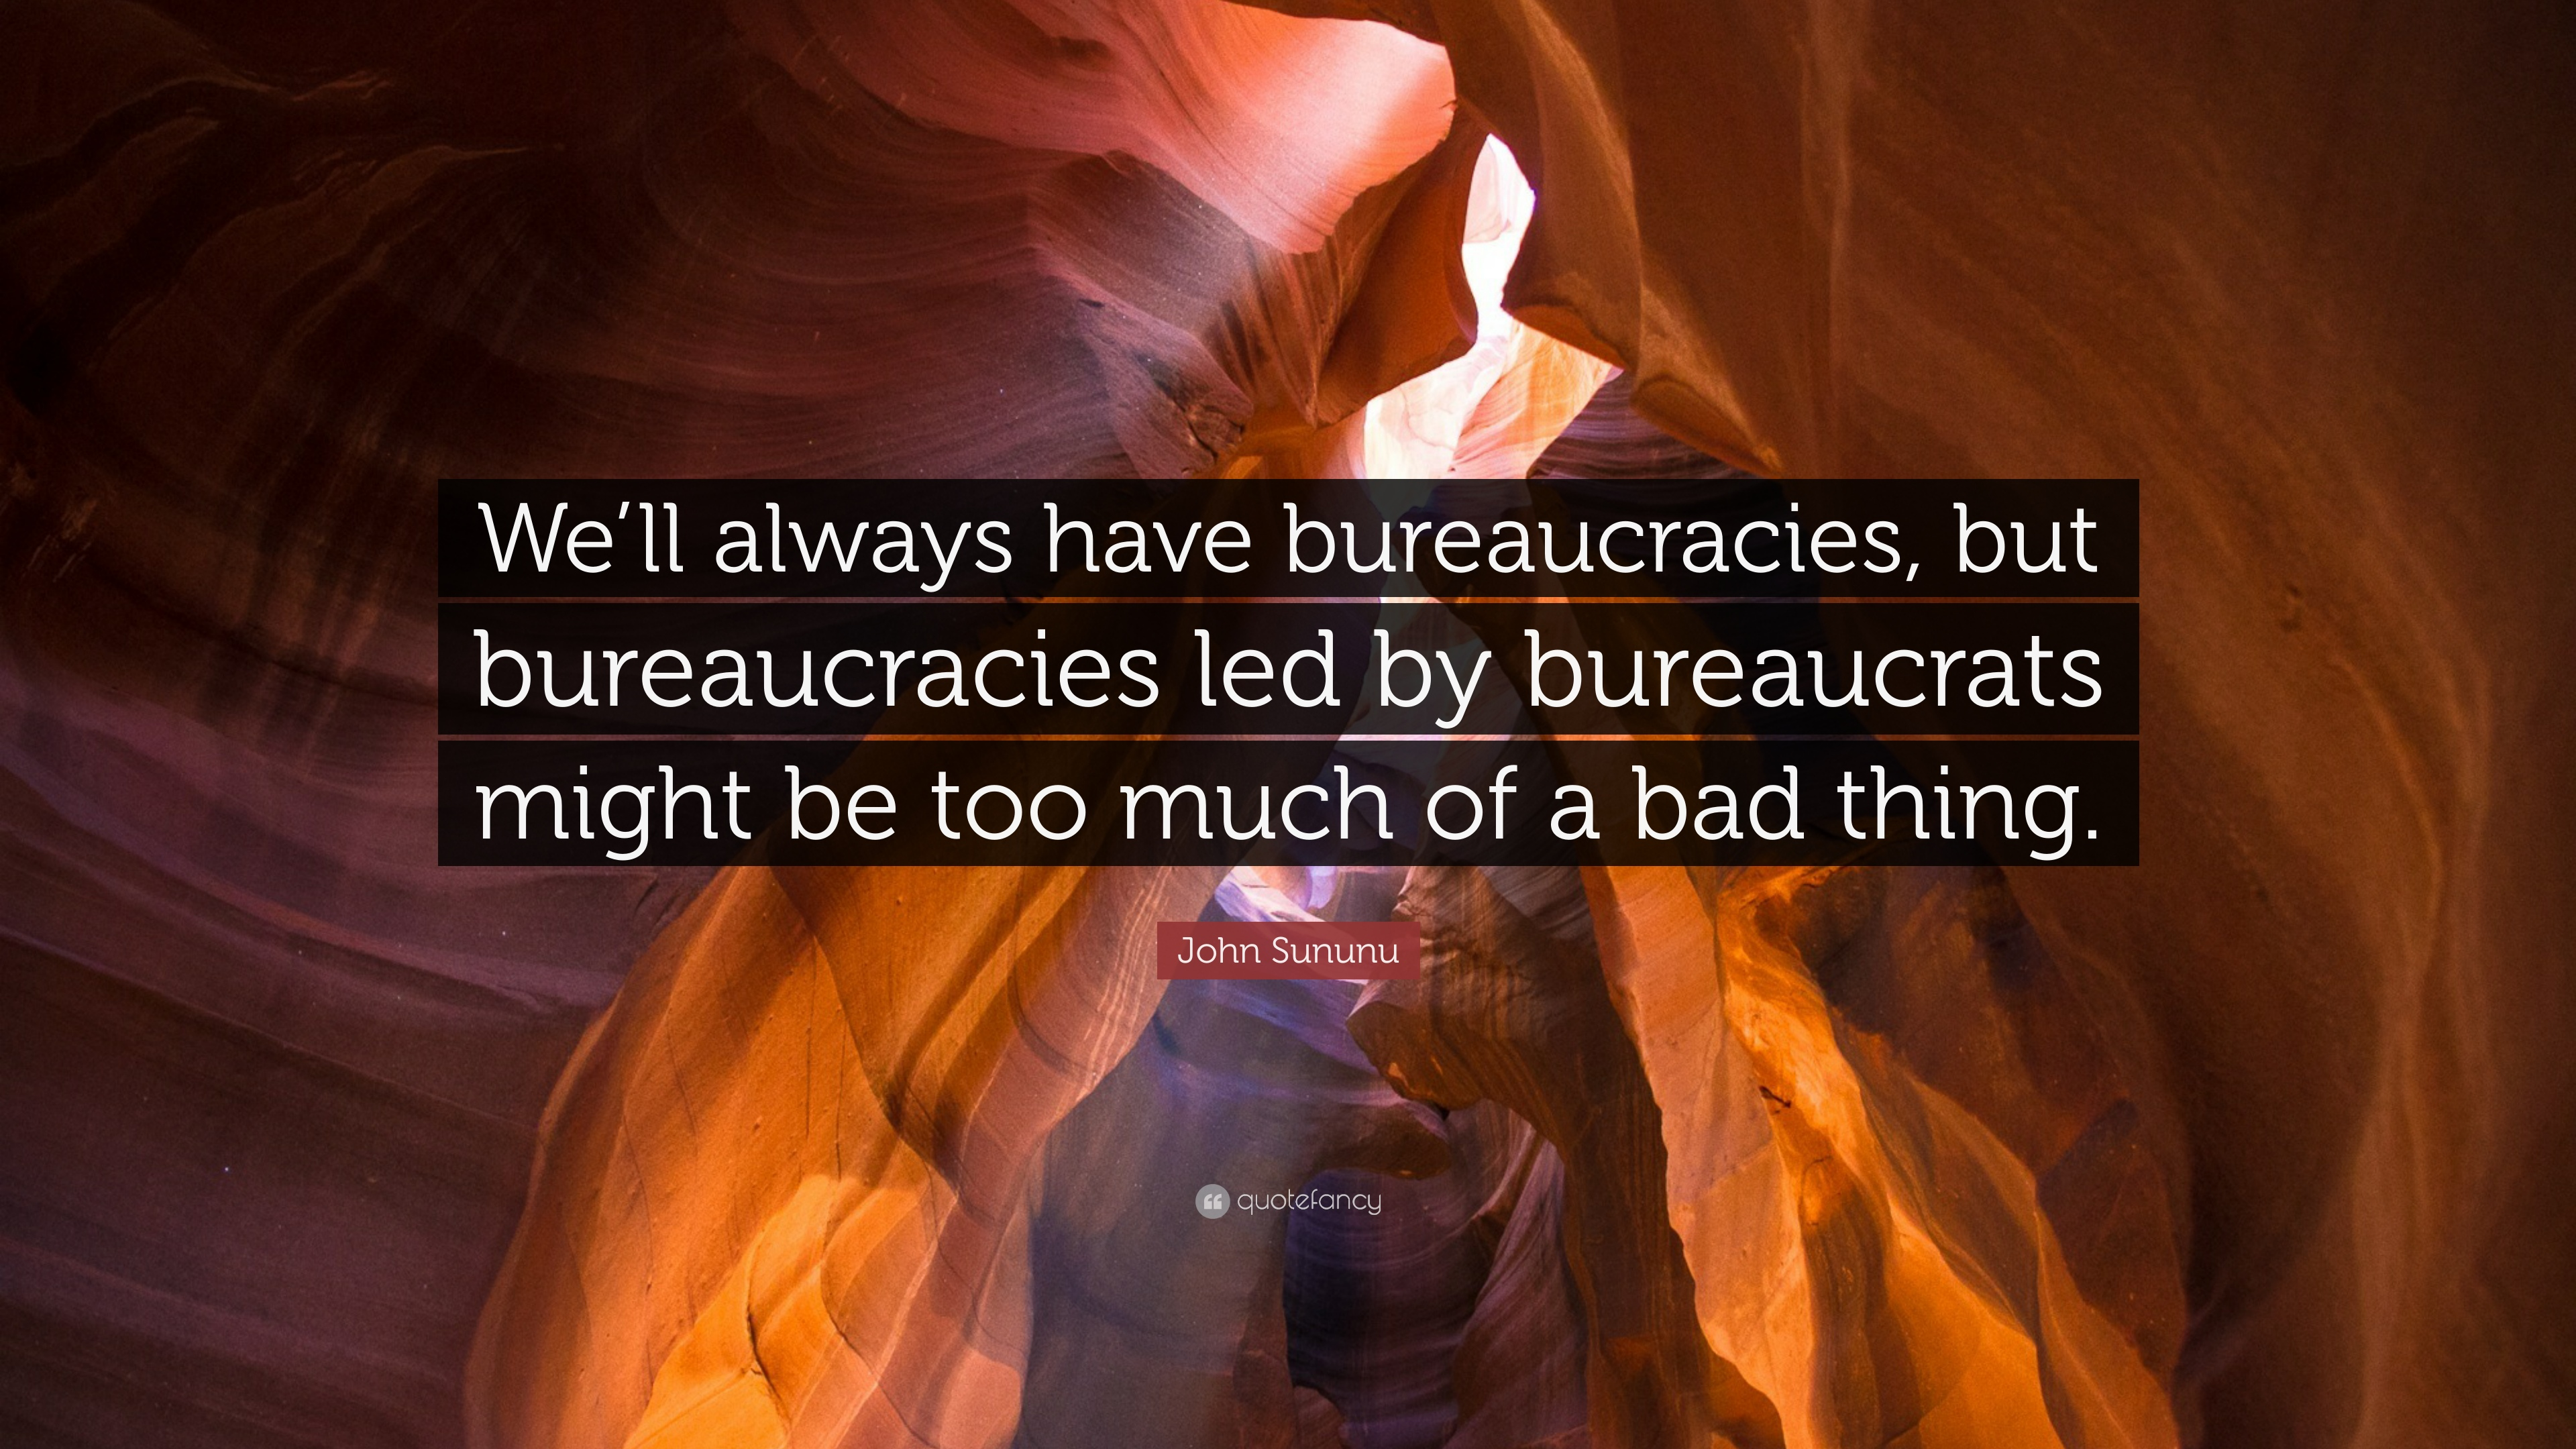 John sununu quote u cwe ll always have bureaucracies but